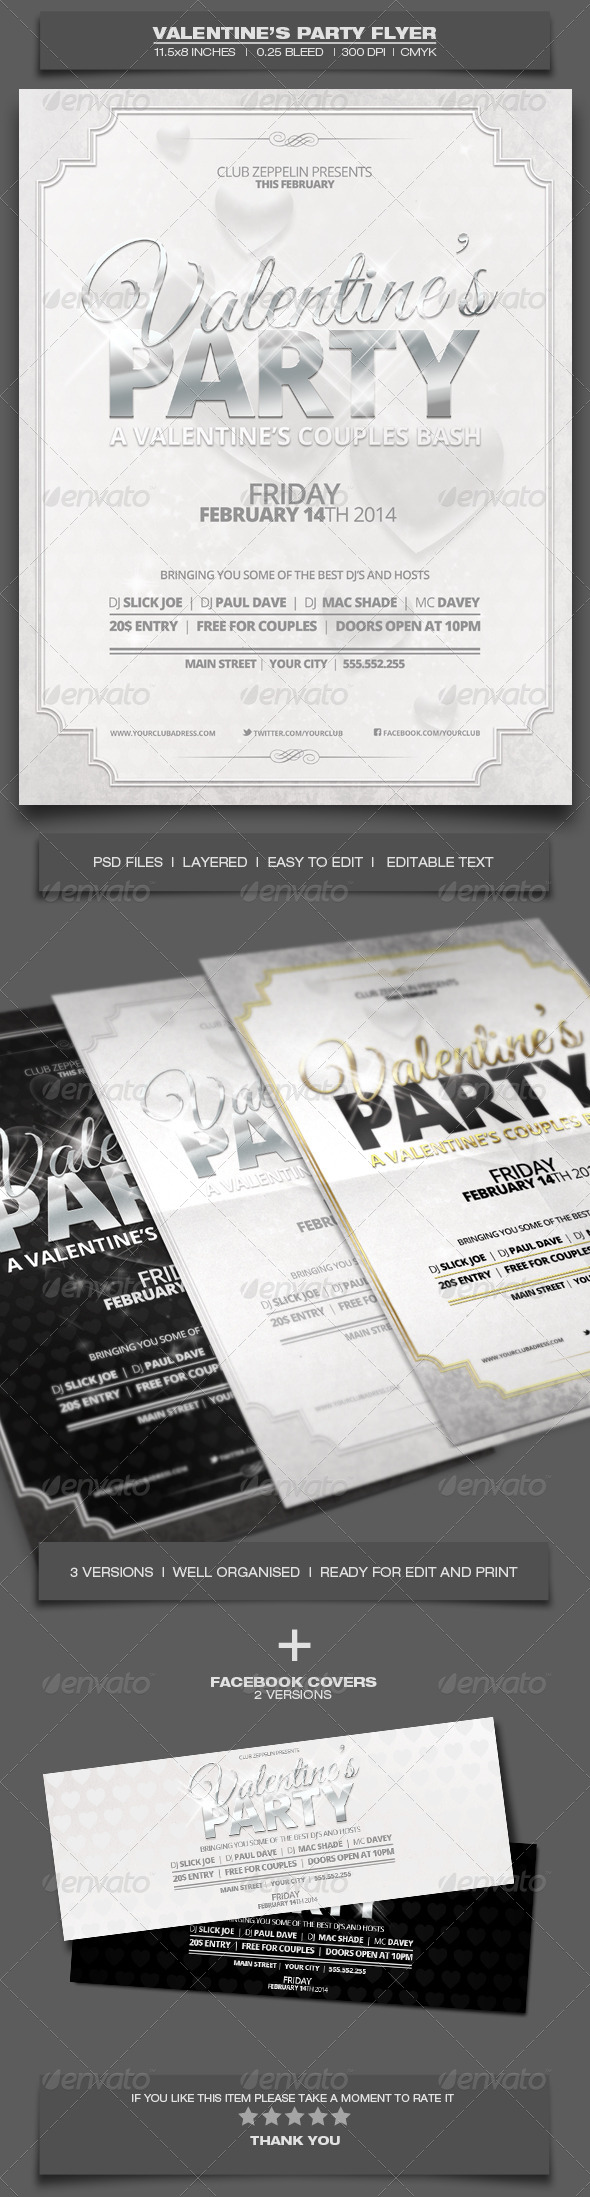 Valentine's Day Party - Event Flyer Template 4 - Holidays Events